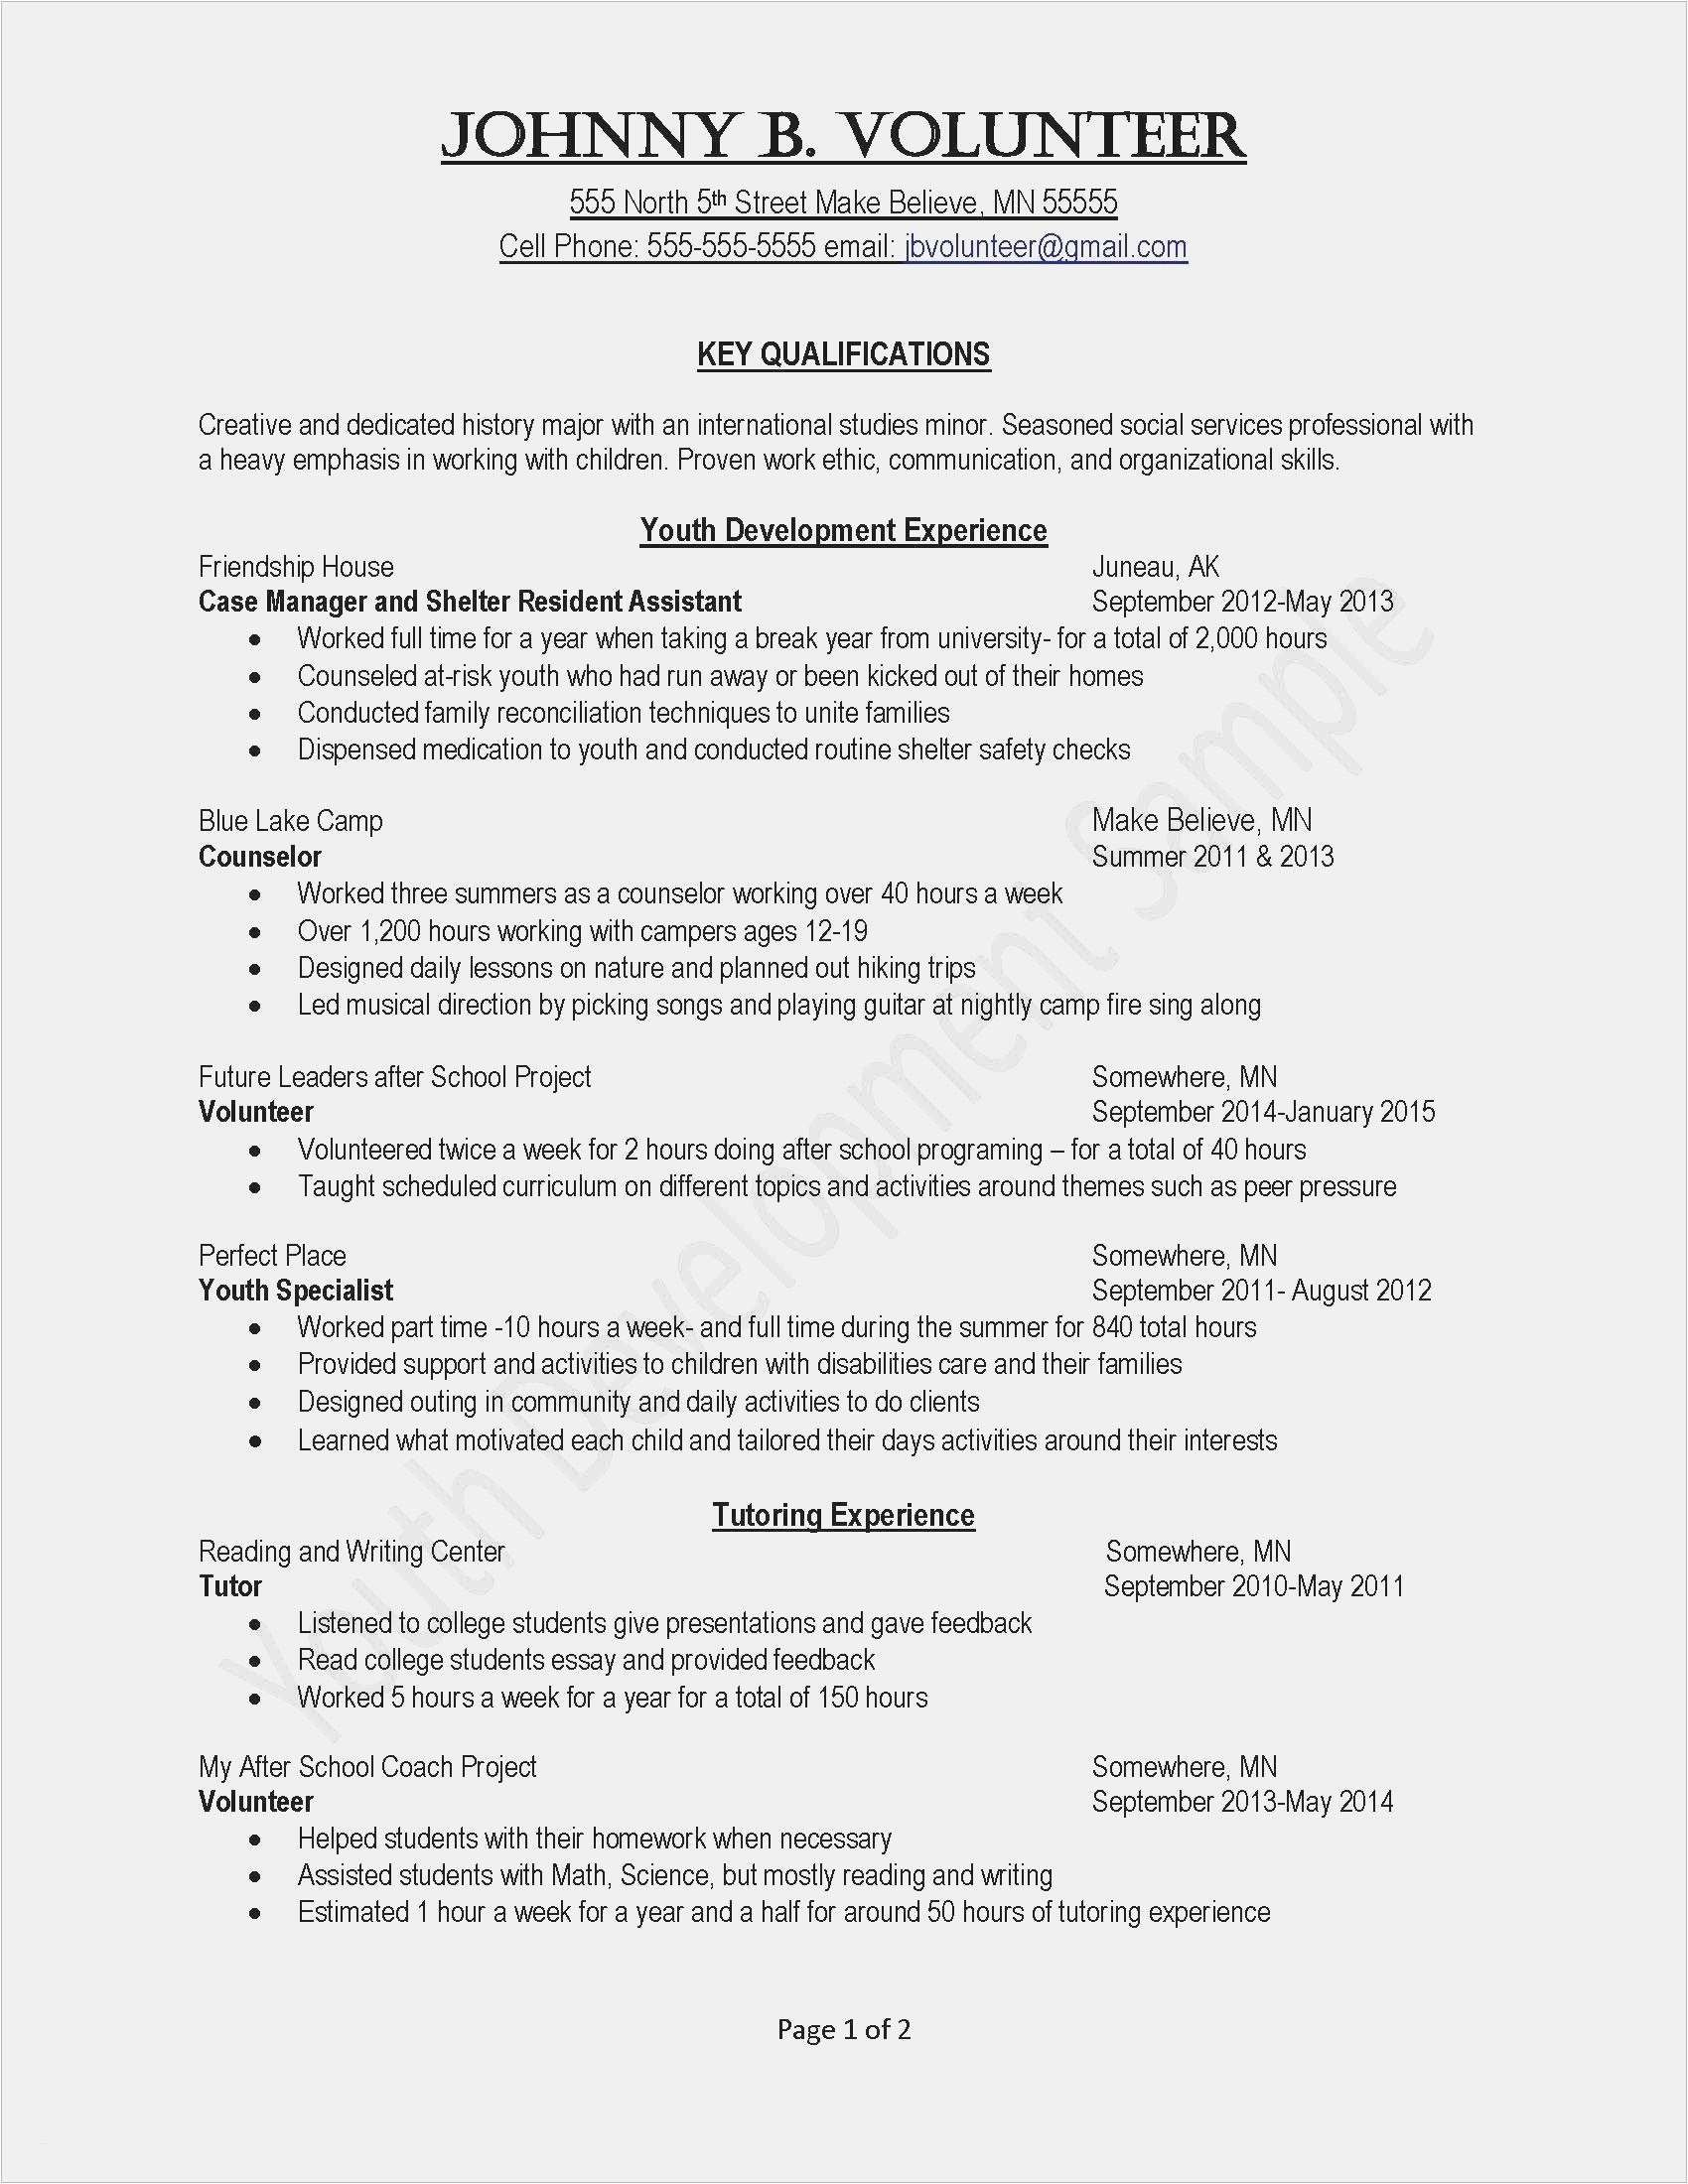 After School Counselor Resume - Guidance Counselor Cover Letter Fresh Cover Letter for Employment